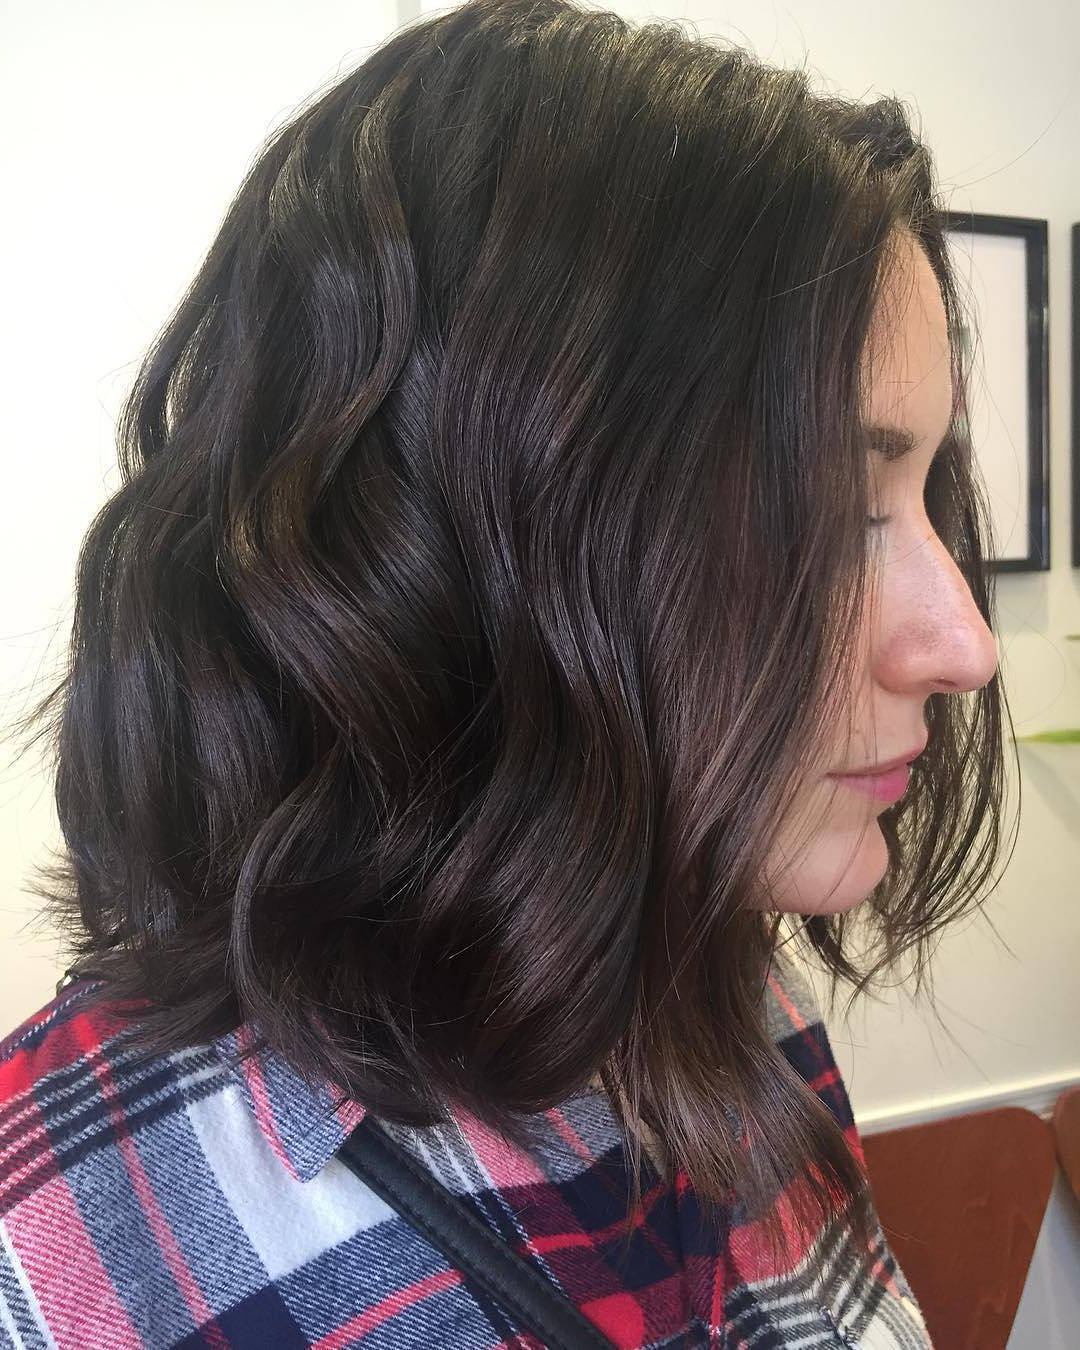 Effortlessly Tousled With Aveda's Texture Tonic (View 12 of 20)